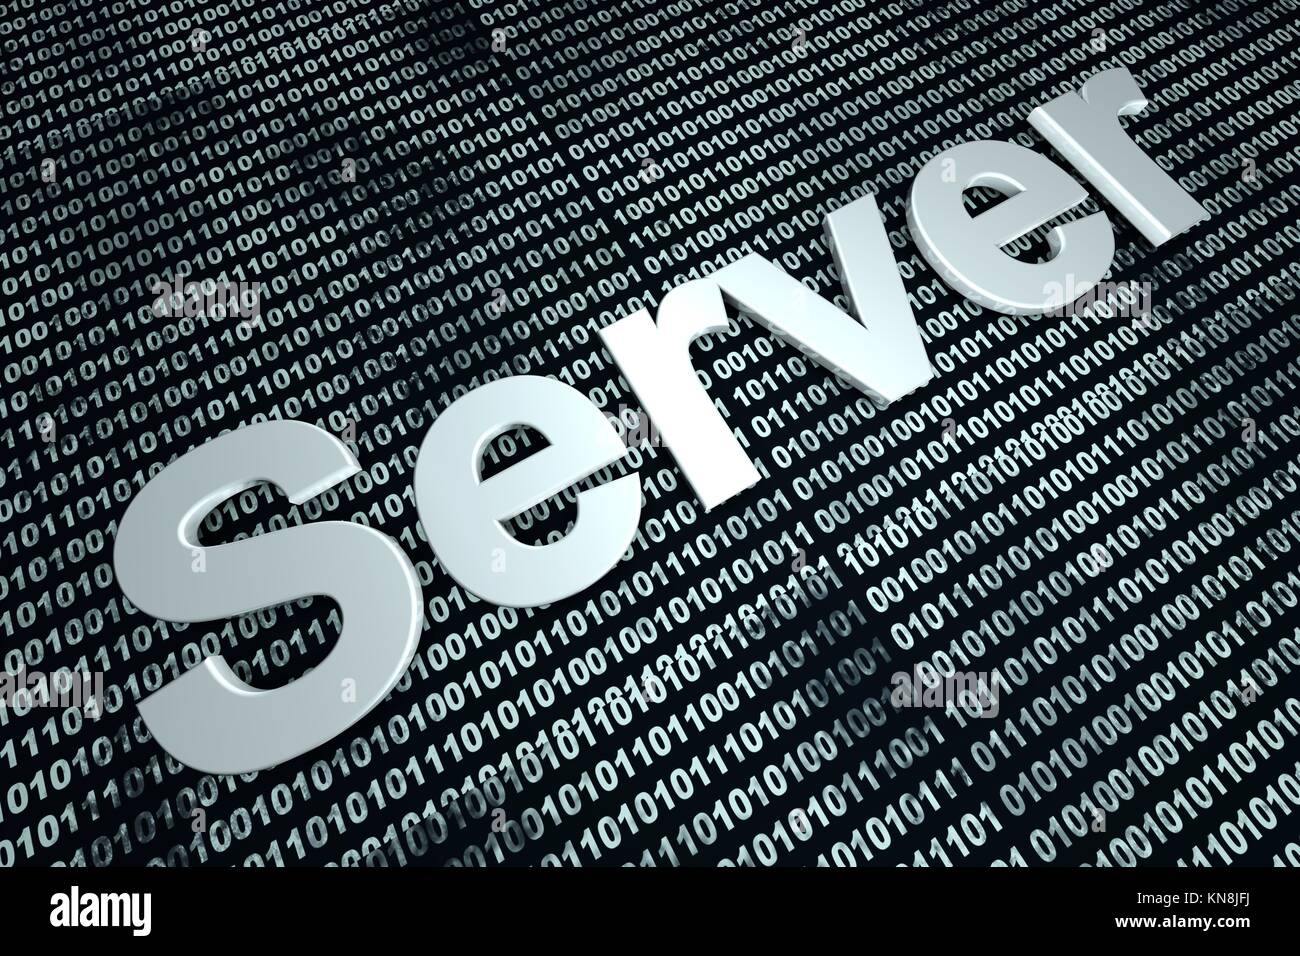 The word server in front of a binary background symbolizing the digital code of software.. - Stock Image